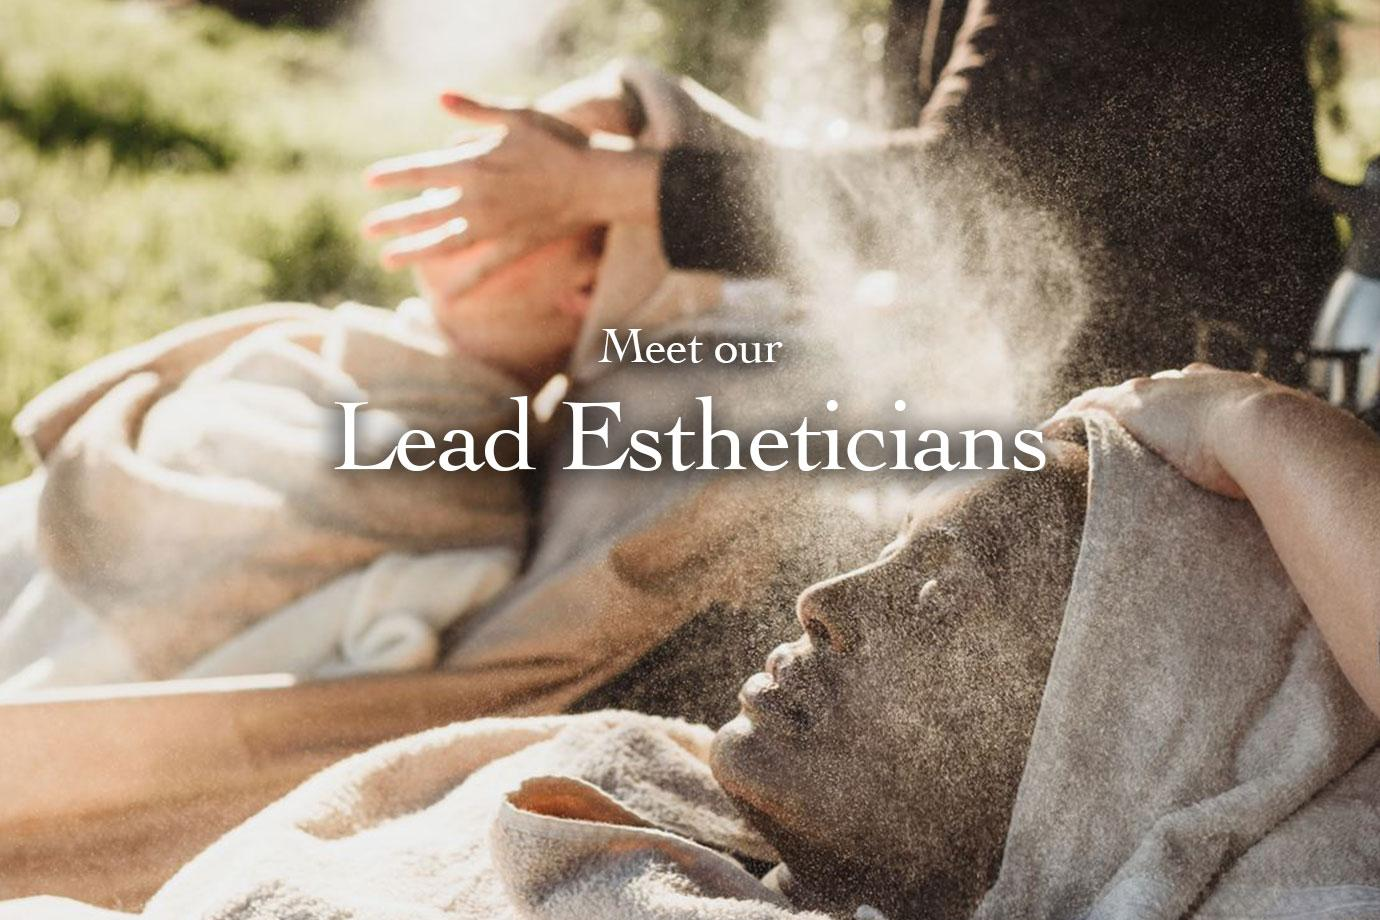 Meet our Lead Estheticians